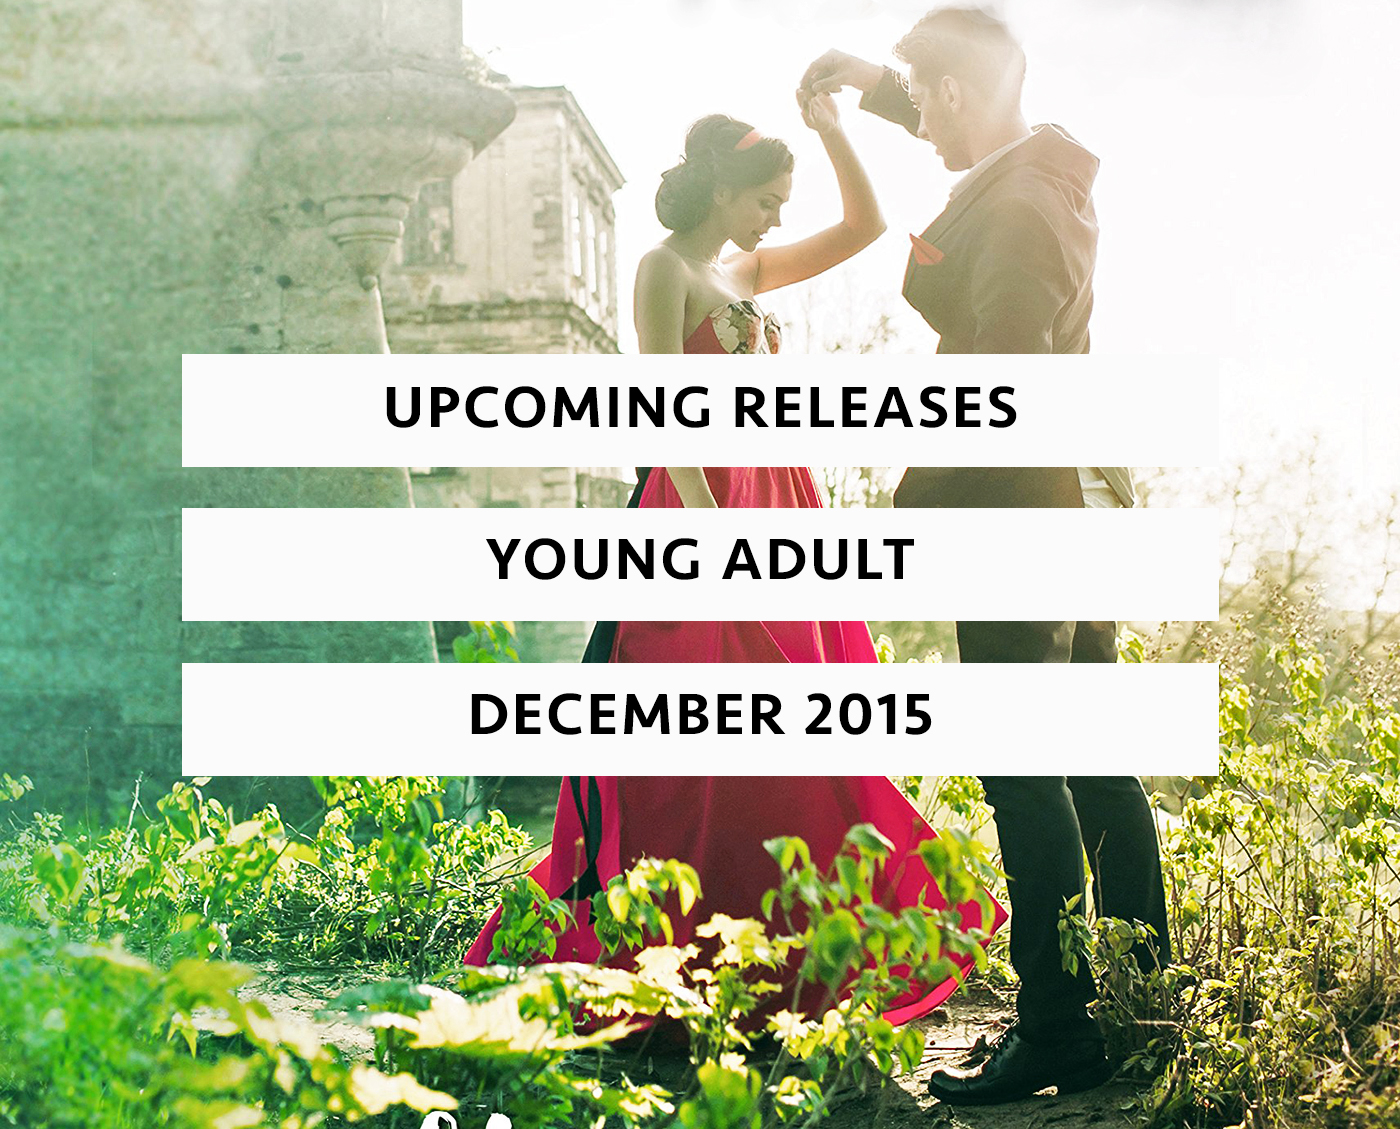 Upcoming Releases December 2015